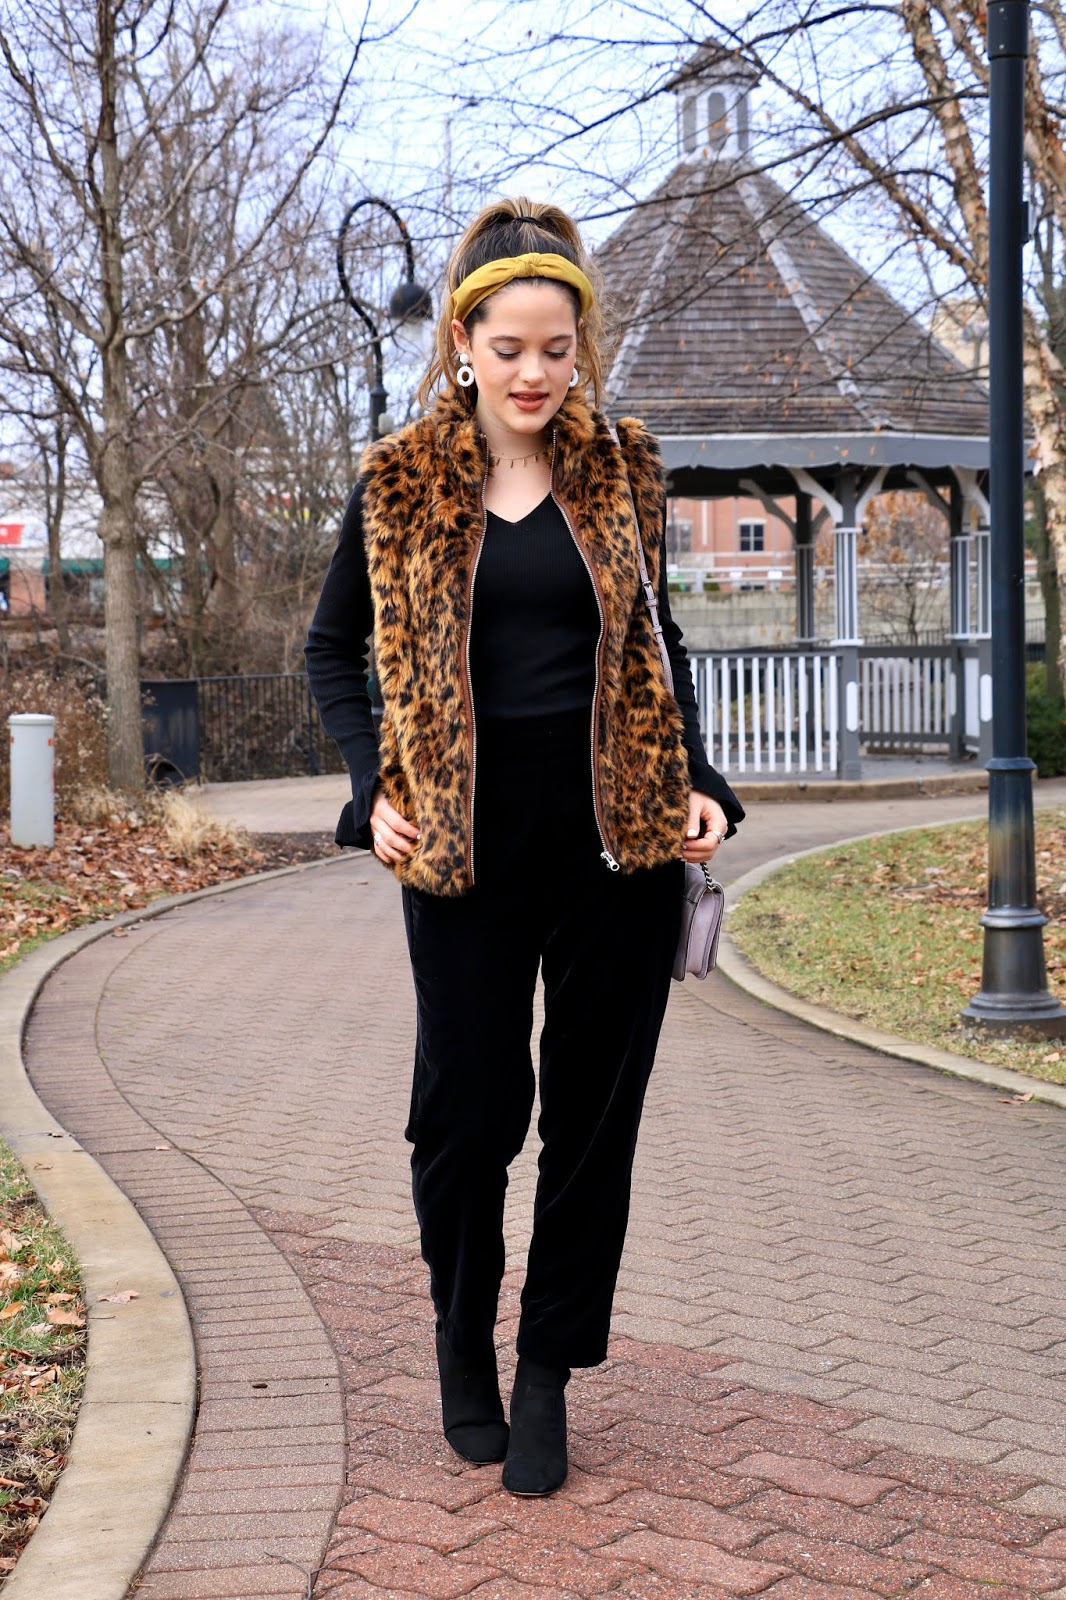 Nyc fashion blogger Kathleen Harper's 2019 winter outfit idea